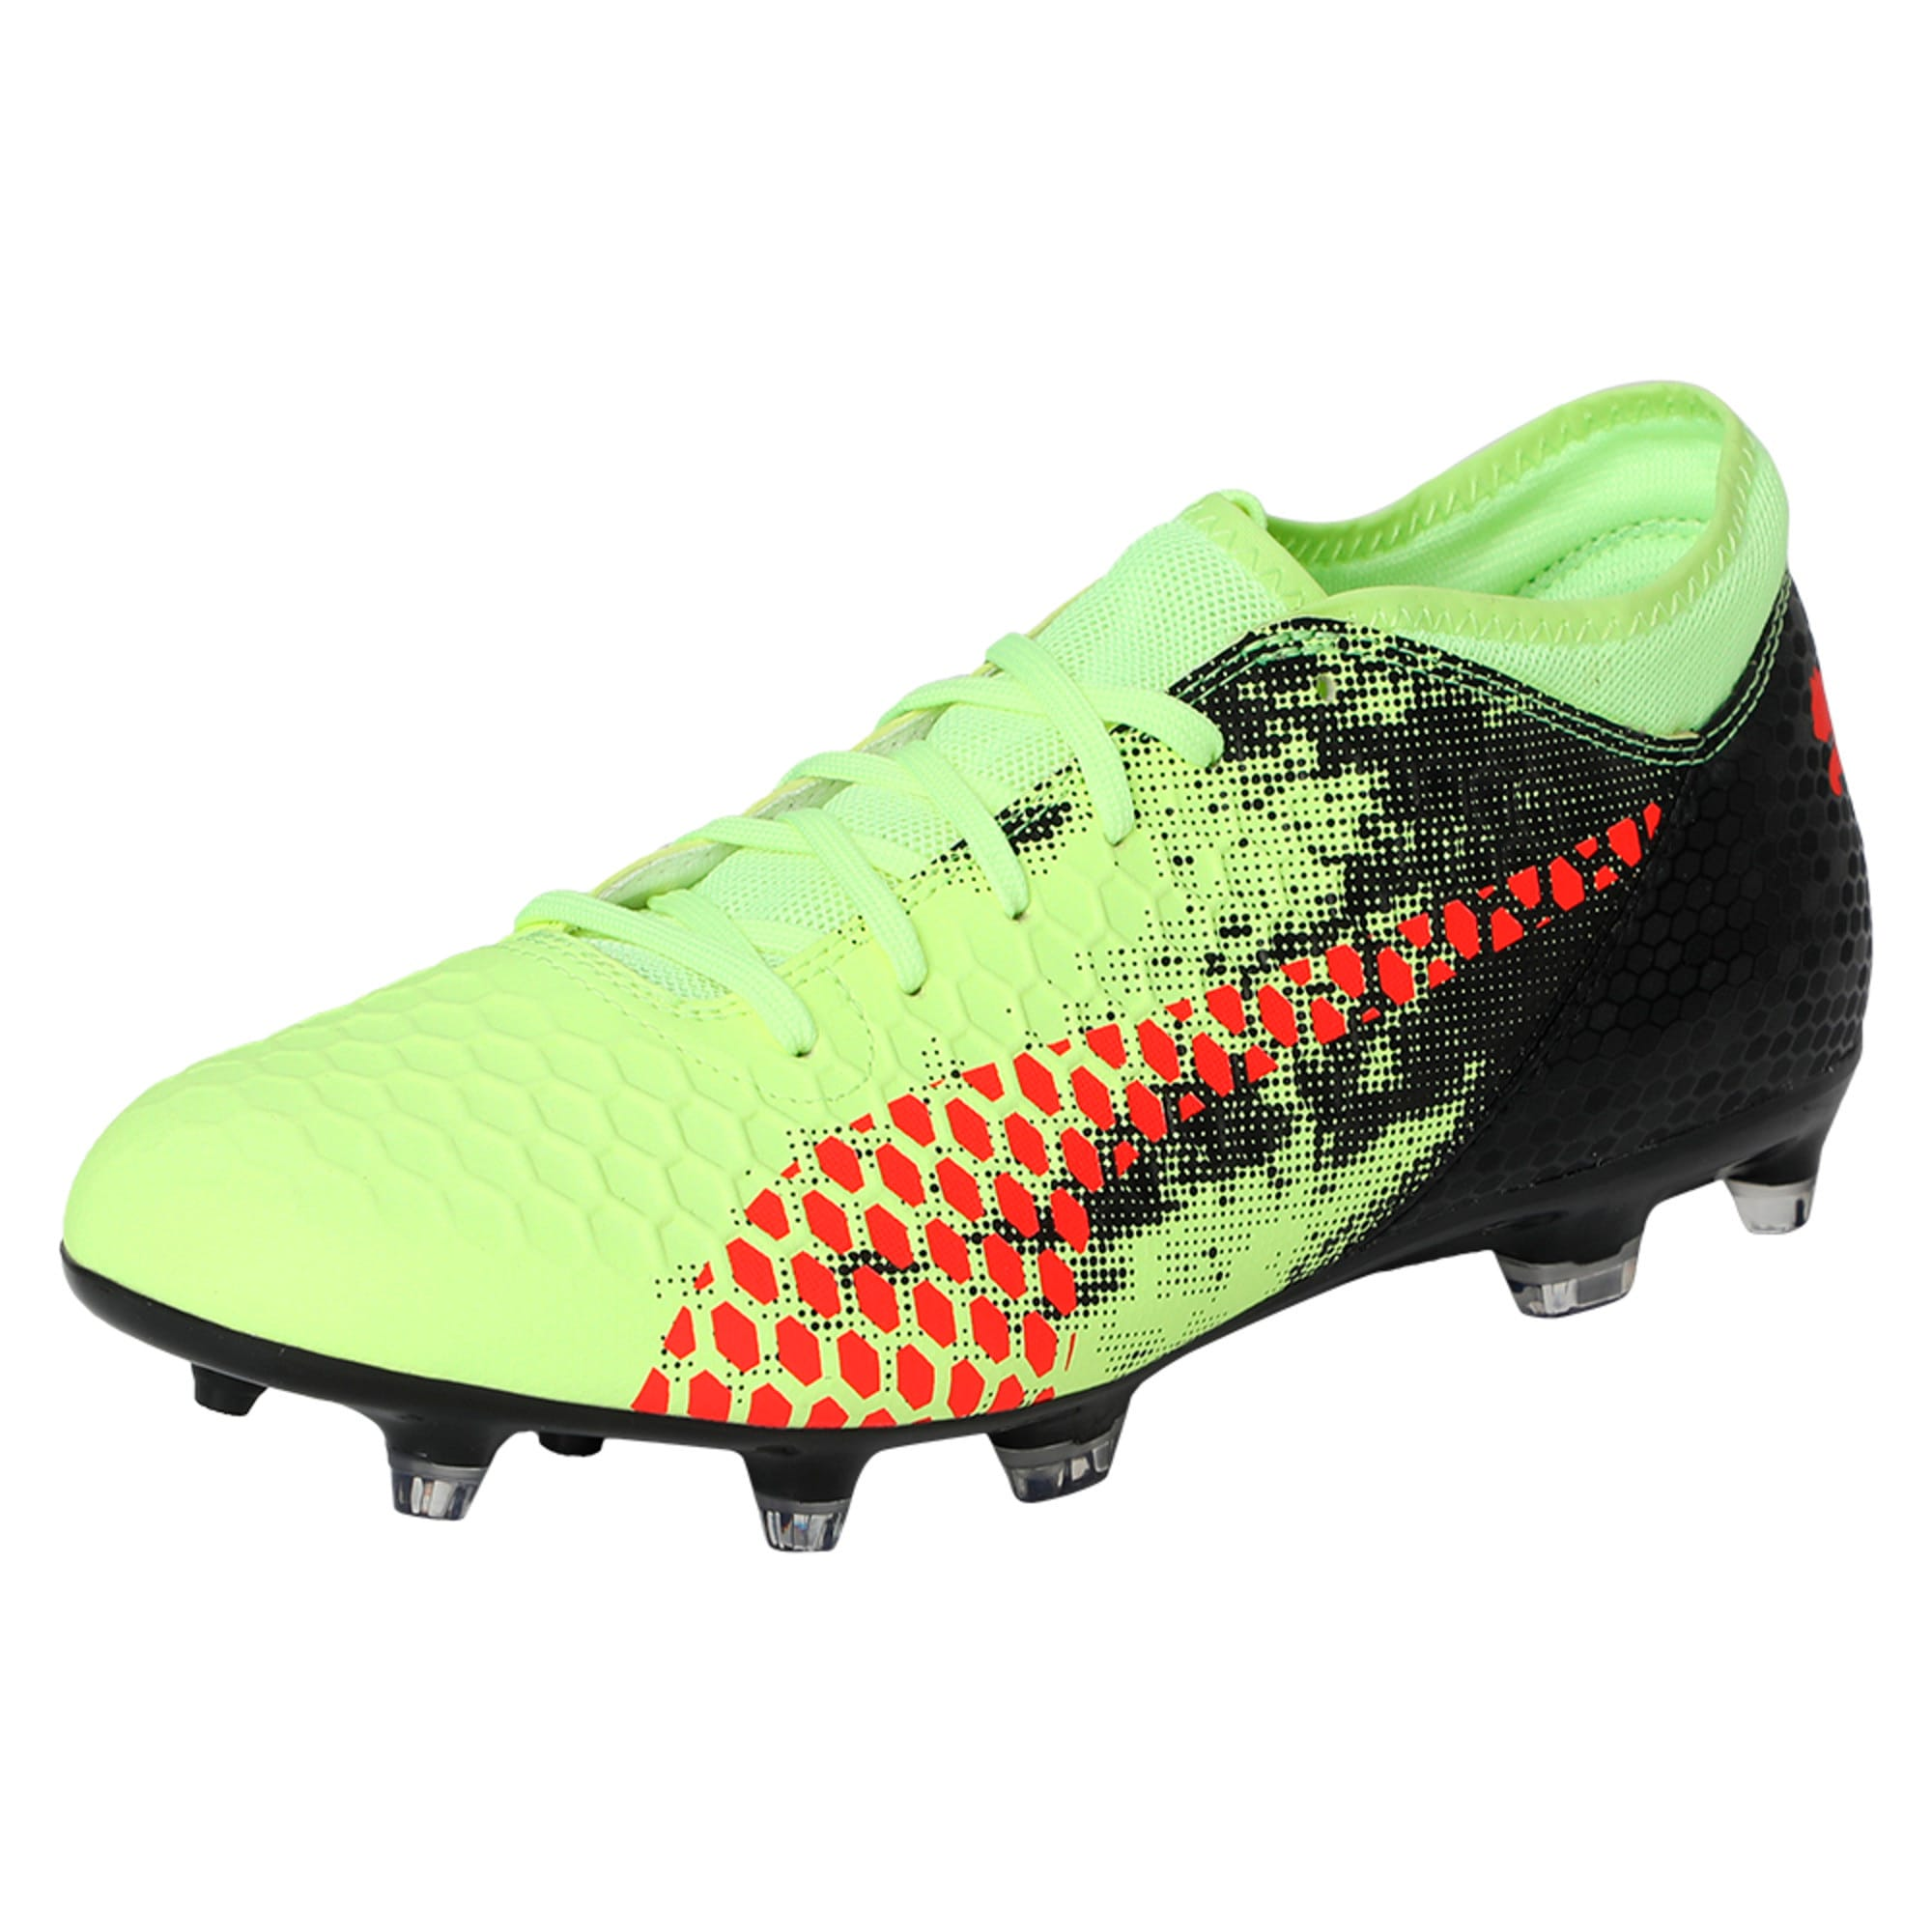 Thumbnail 1 of FUTURE 18.4 FG/AG Men's Football Boots, Yellow-Red-Black, medium-IND